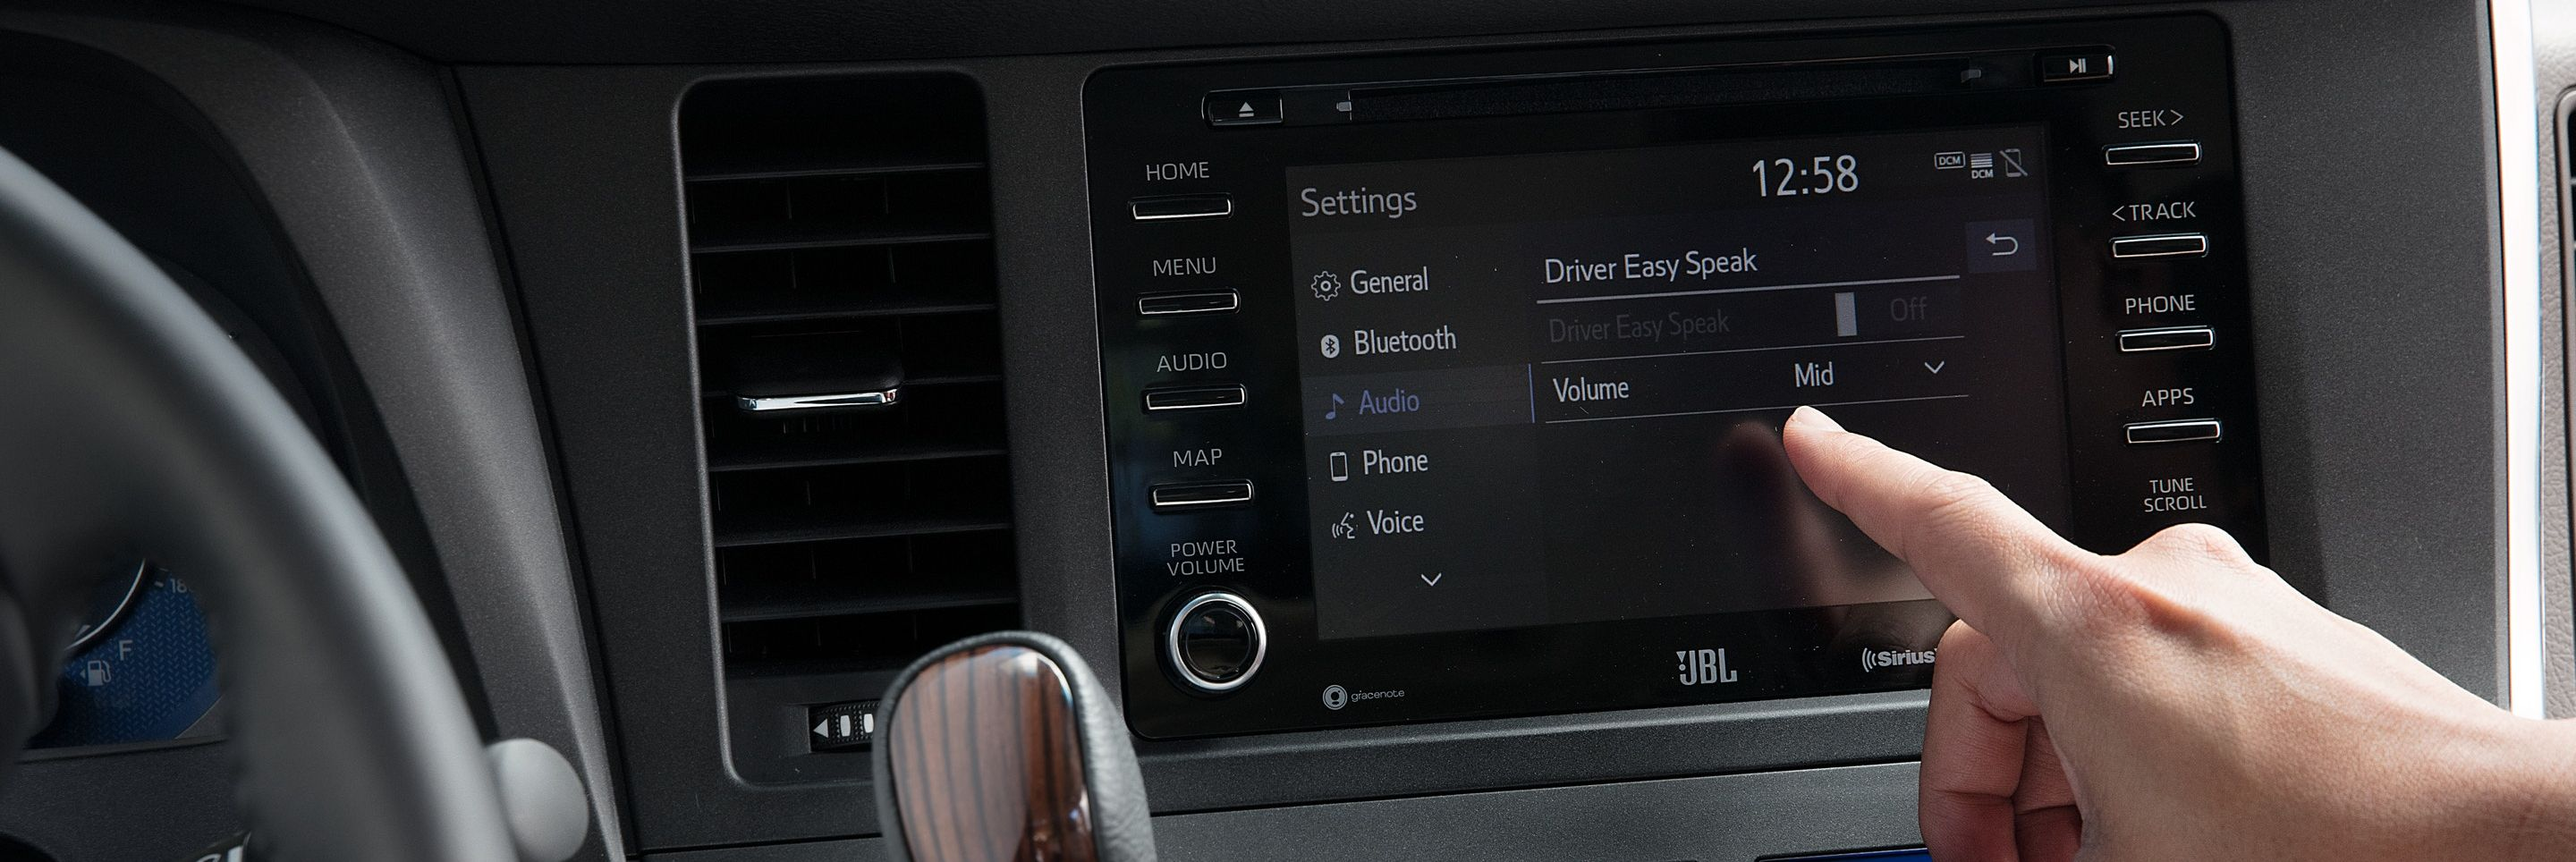 Driver Easy Speak Feature in the 2020 Toyota Sienna